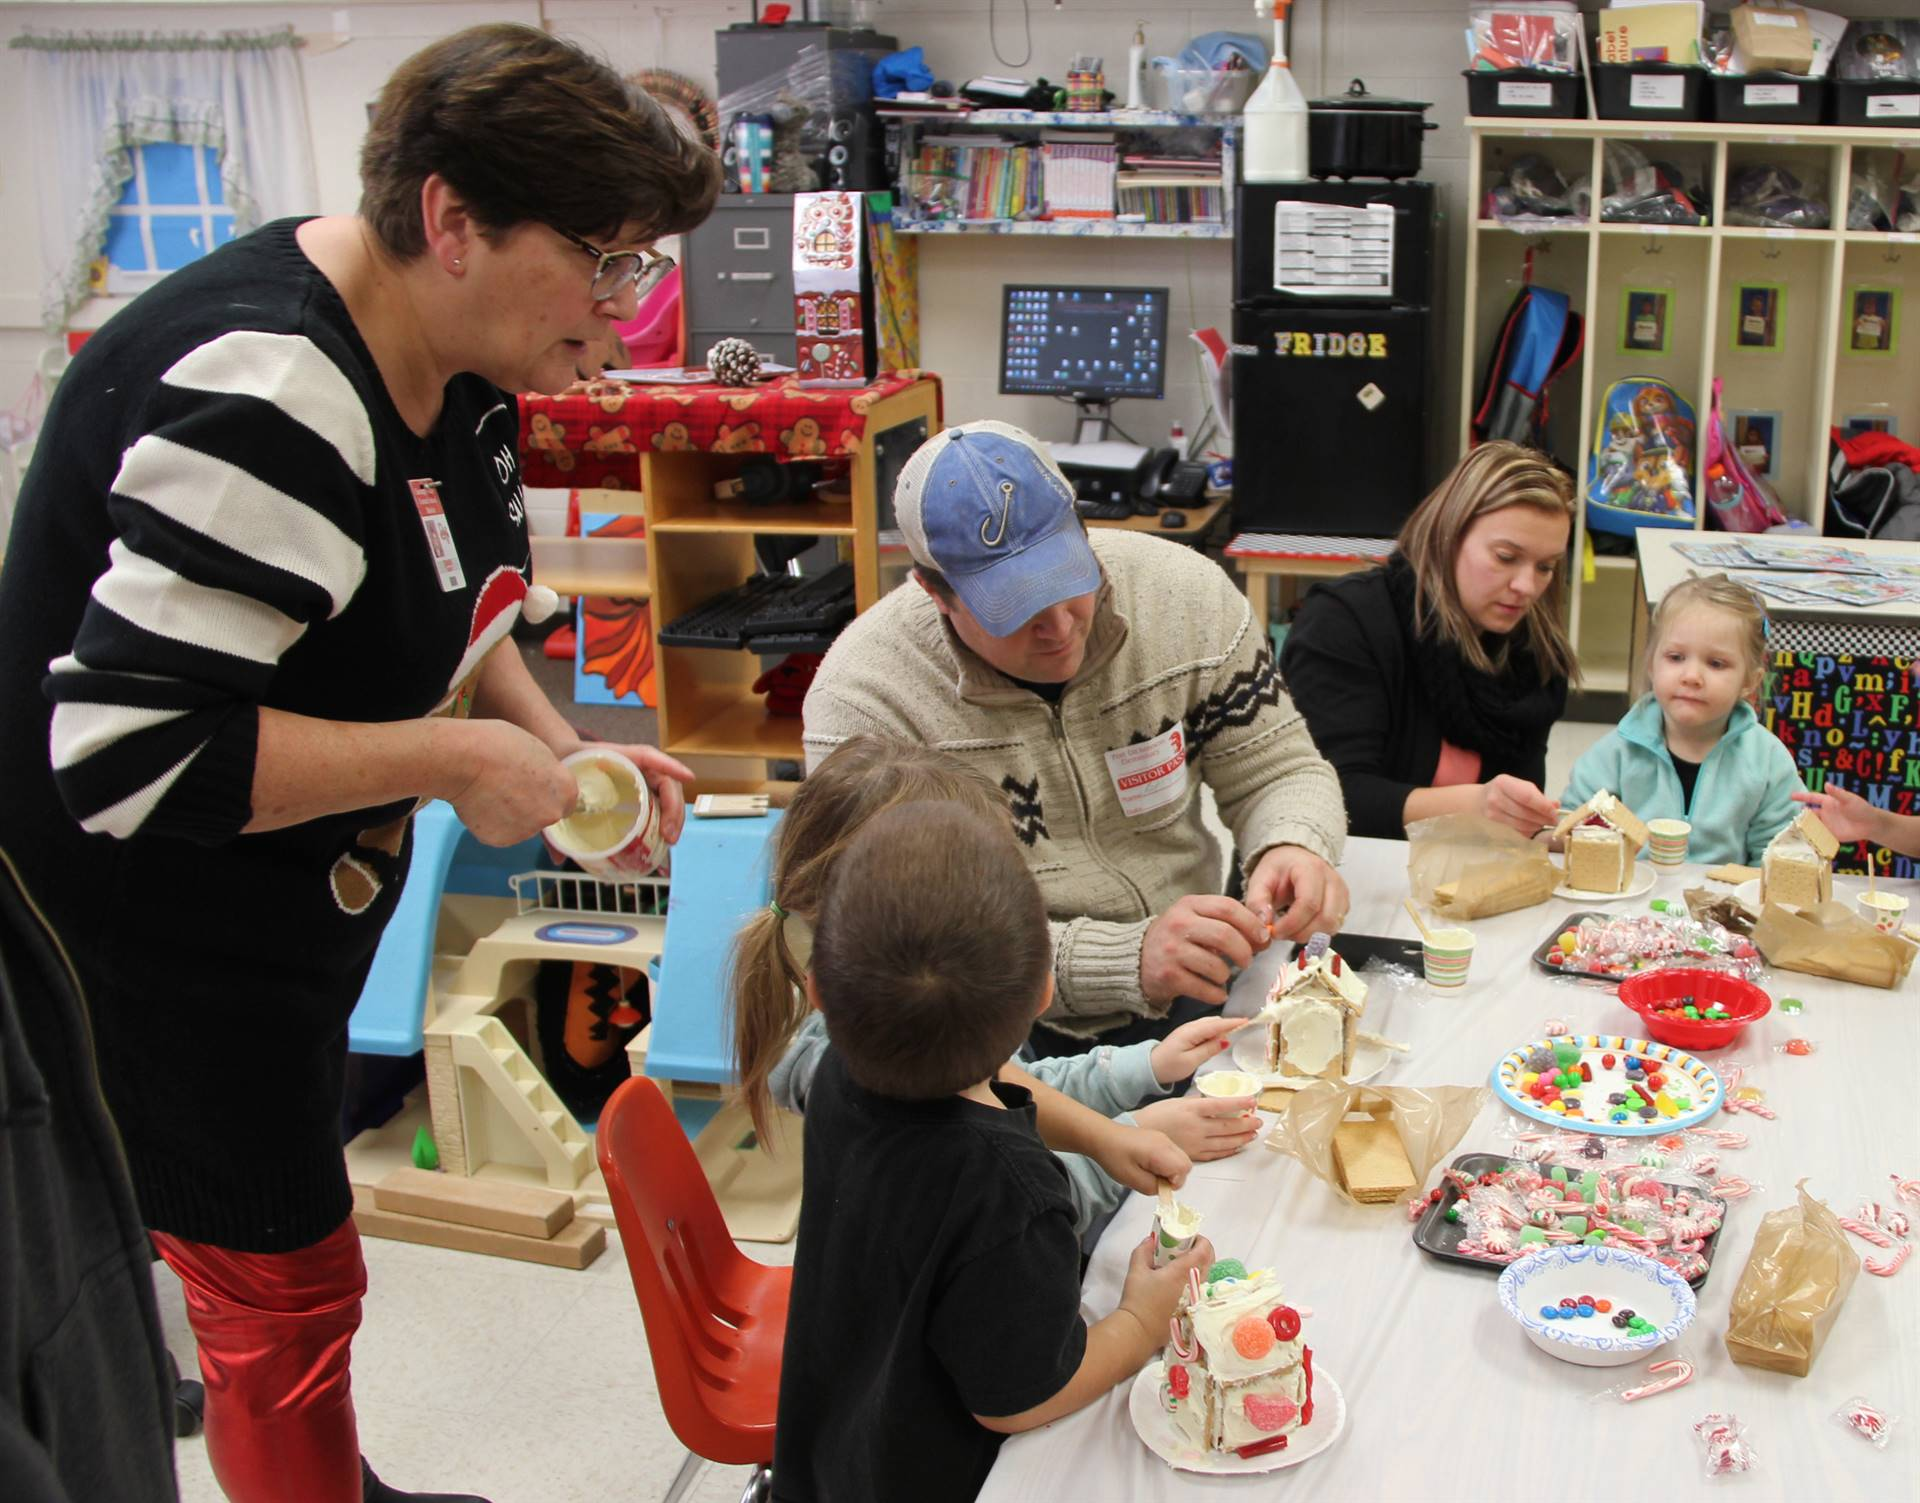 more people decorating gingerbread houses